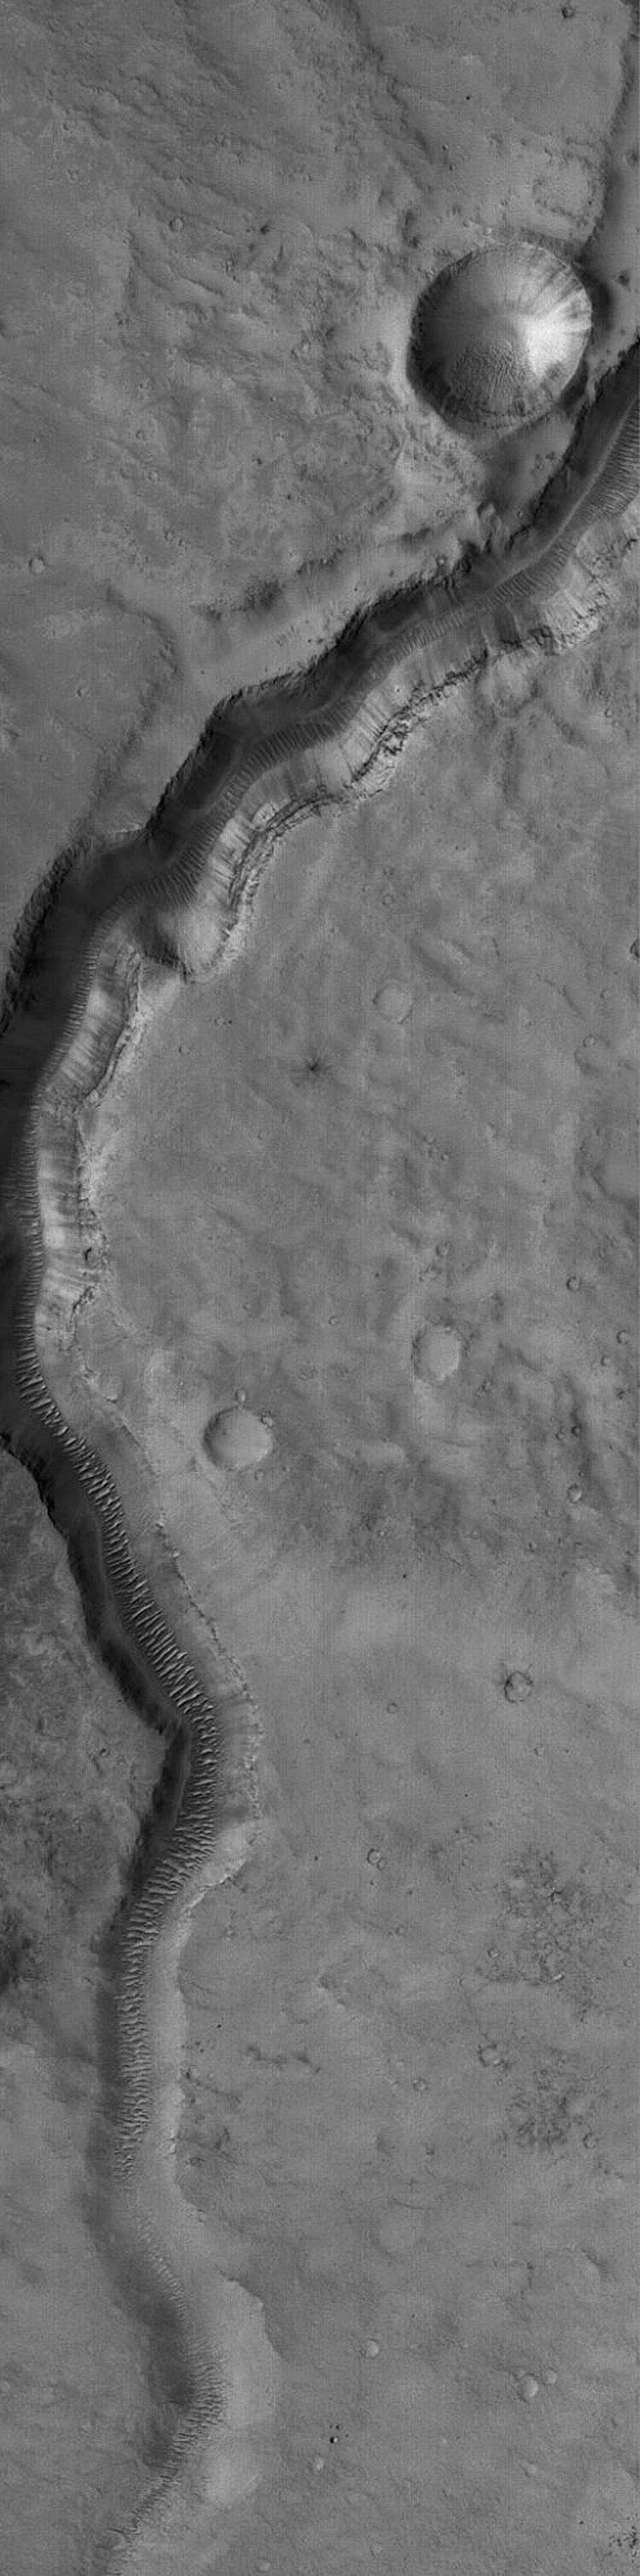 NASA's Mars Global Surveyor shows an ancient valley in far northwestern Arabia Terra, near the Cydonia region on Mars. Large, windblown ripples occur on the valley floor.